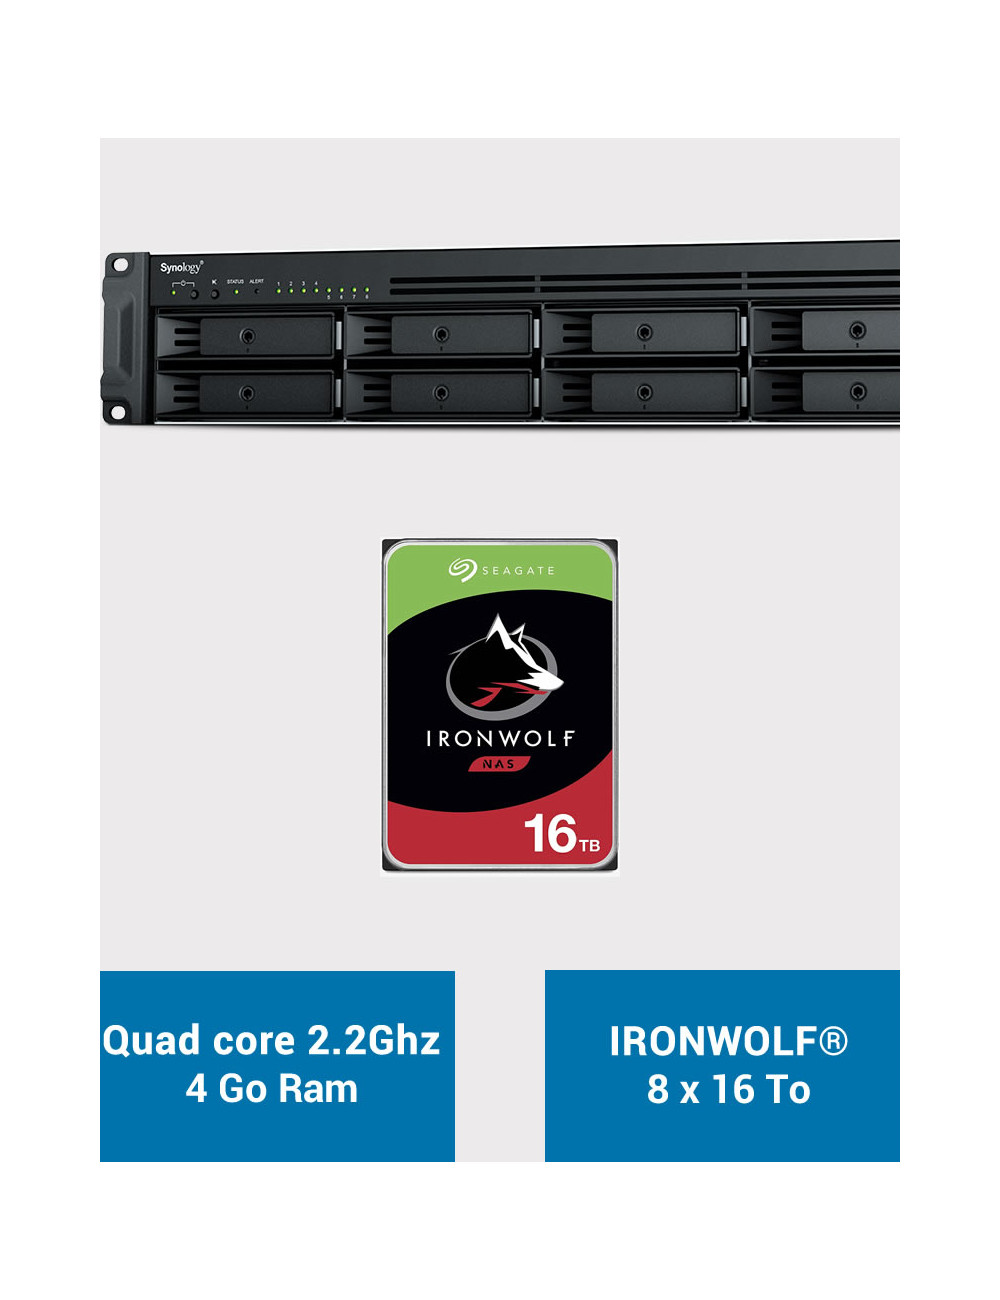 Synology RS1221+ Serveur NAS Rack IRONWOLF 128To (8x16To)